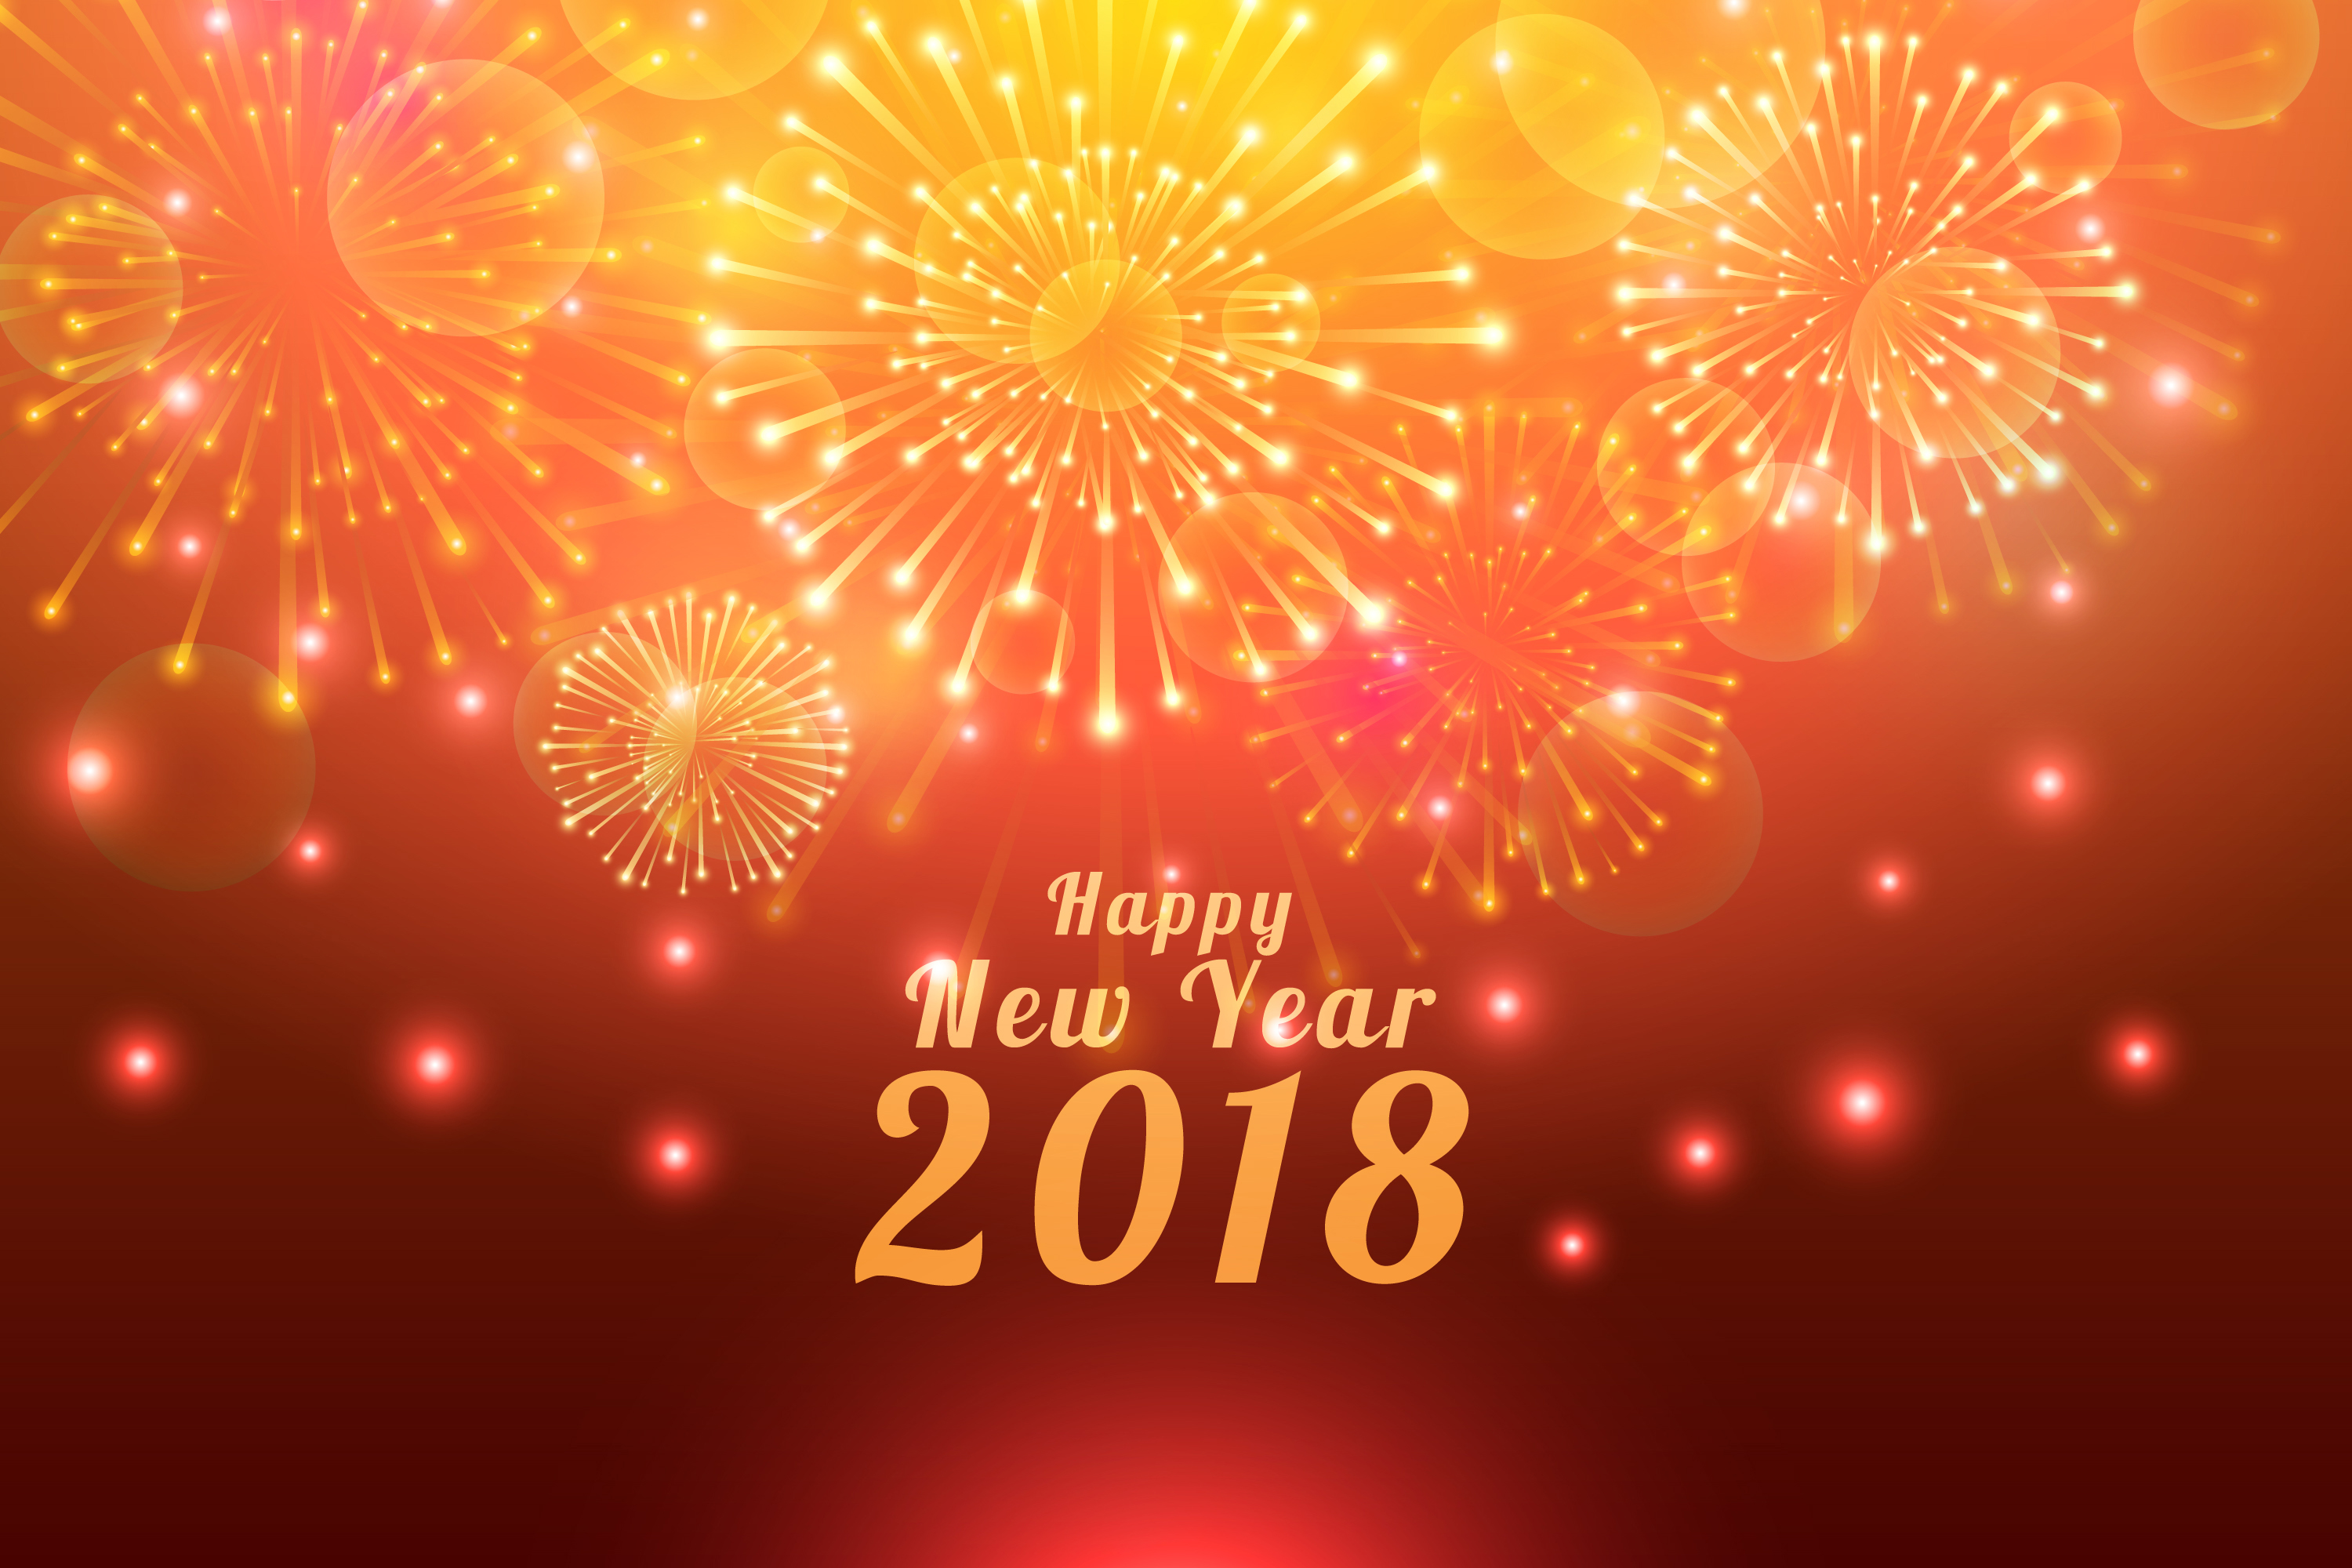 new year 2018 with bright crackers wallpaper download 3000x2000